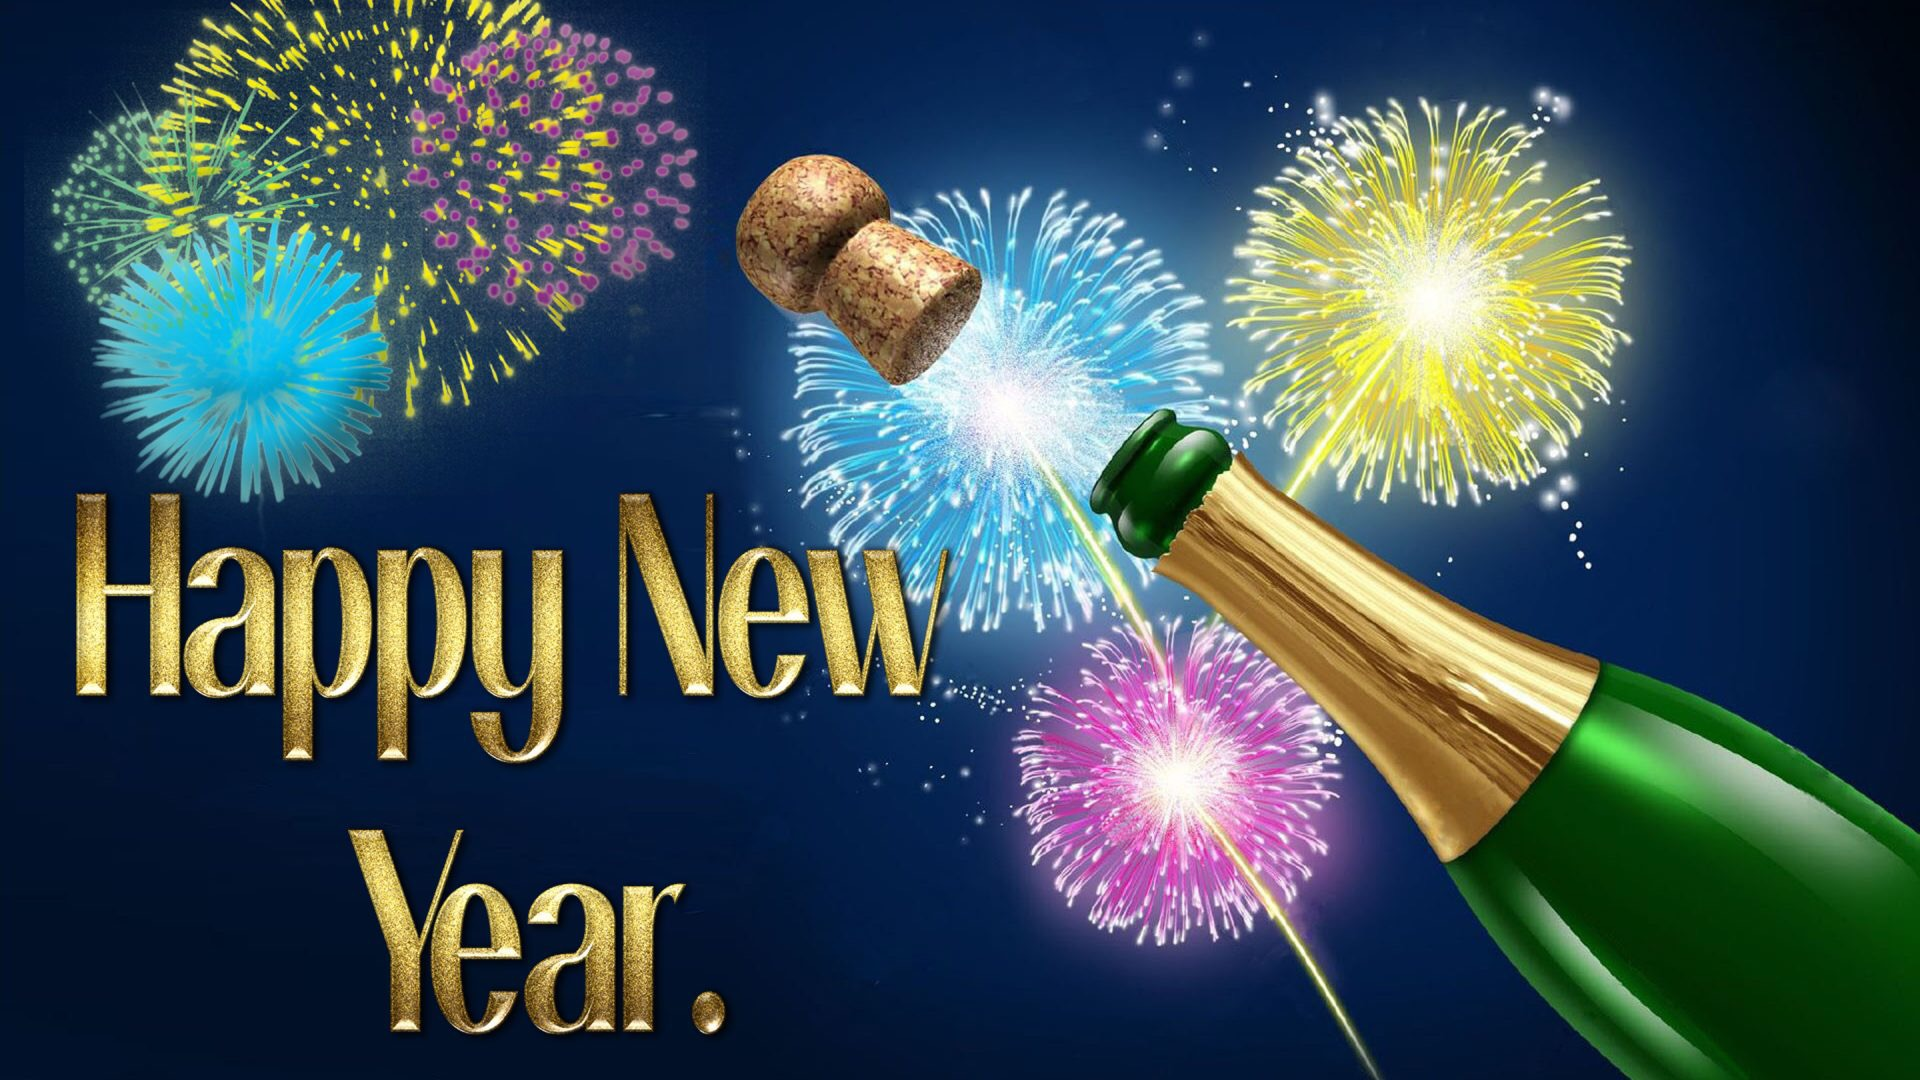 Free Hd Happy New Year Animated 3d Wallpapers Download 1920×1080